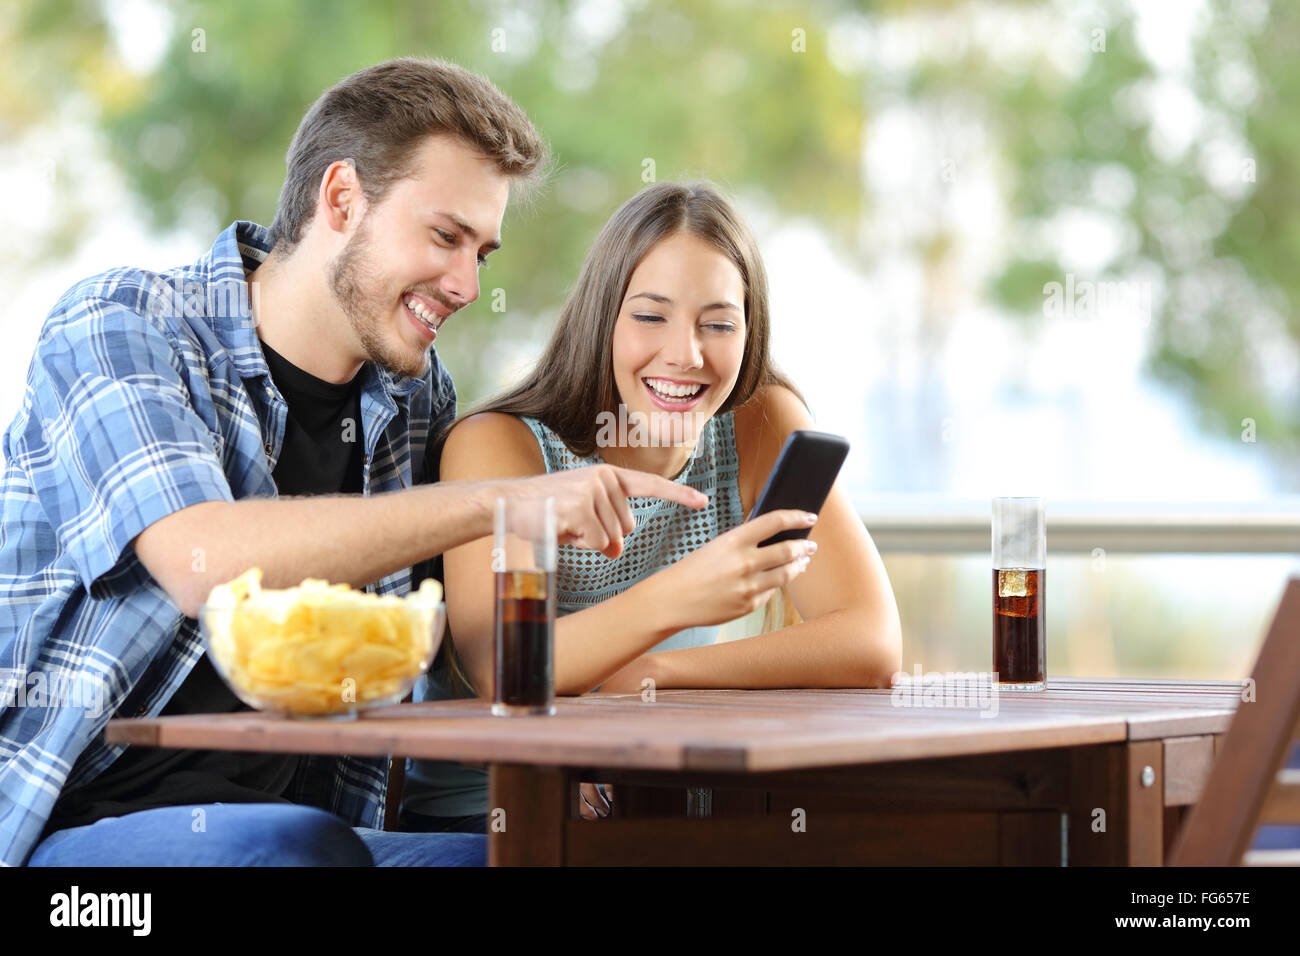 Couple sharing a smart phone sitting on a hotel or home terrace - Stock Image